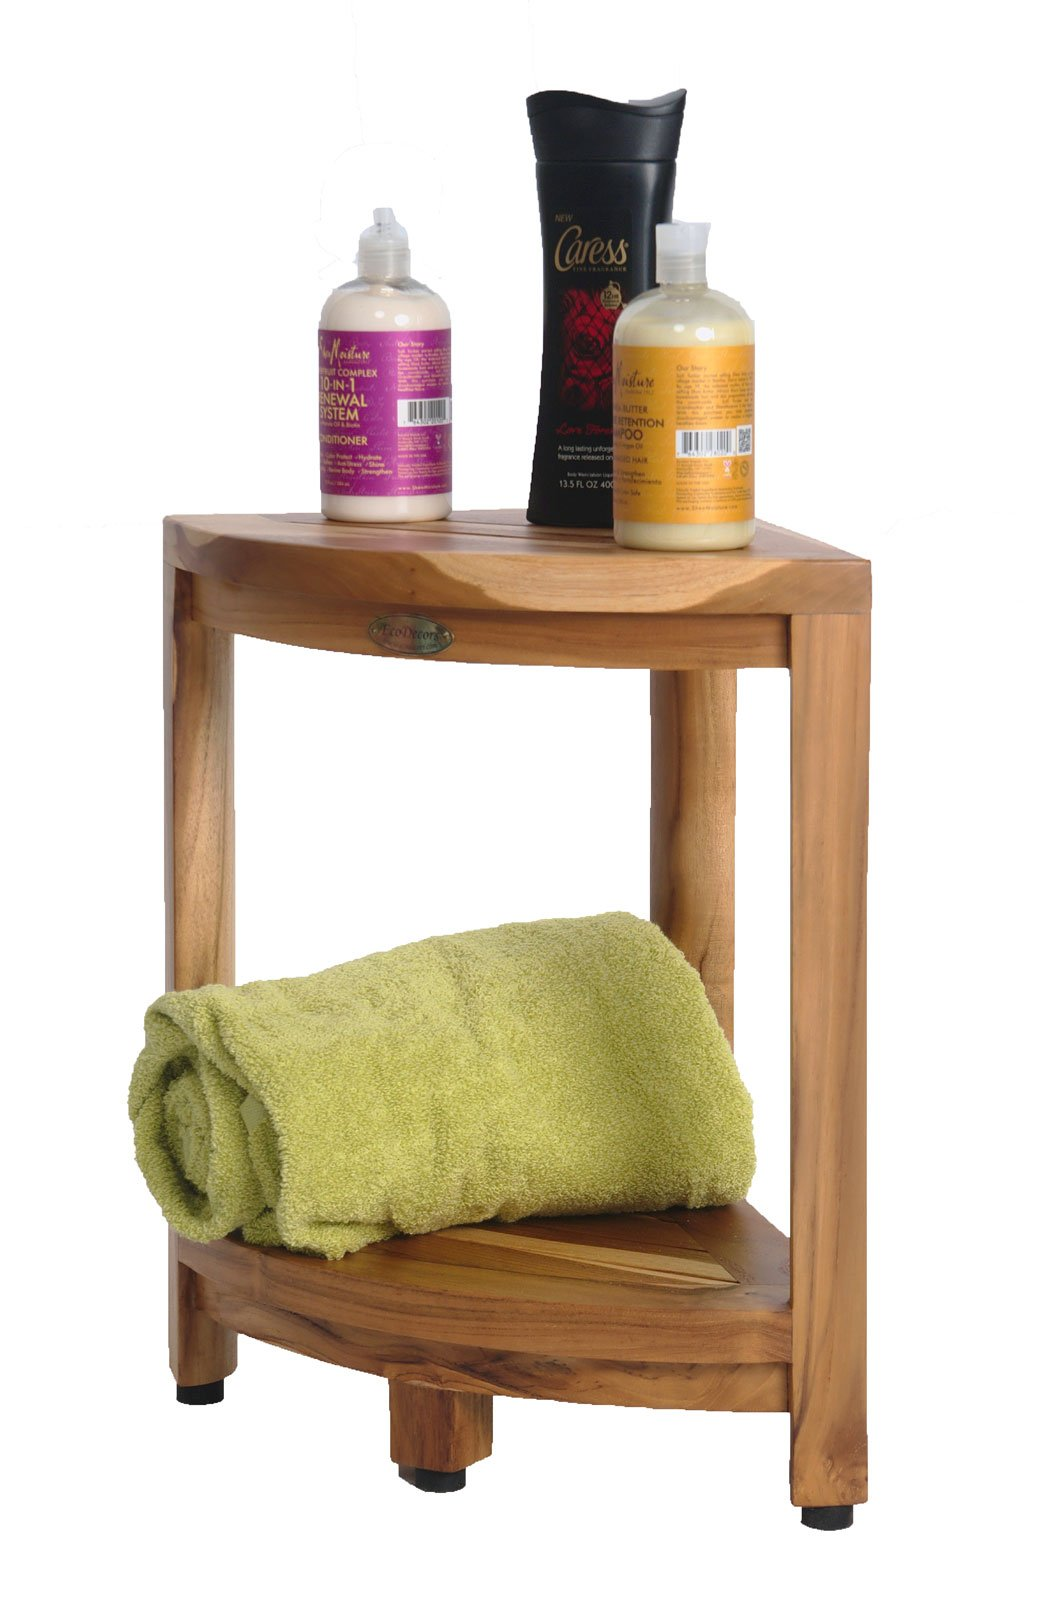 New- EcoDecors EarthyTeak™ FULLY ASSEMBLED 2-Tier Compact Teak Corner Shower Foot Stool With Shelf- Shower Storage, Shaving Foot Rest by EcoDecors (Image #4)